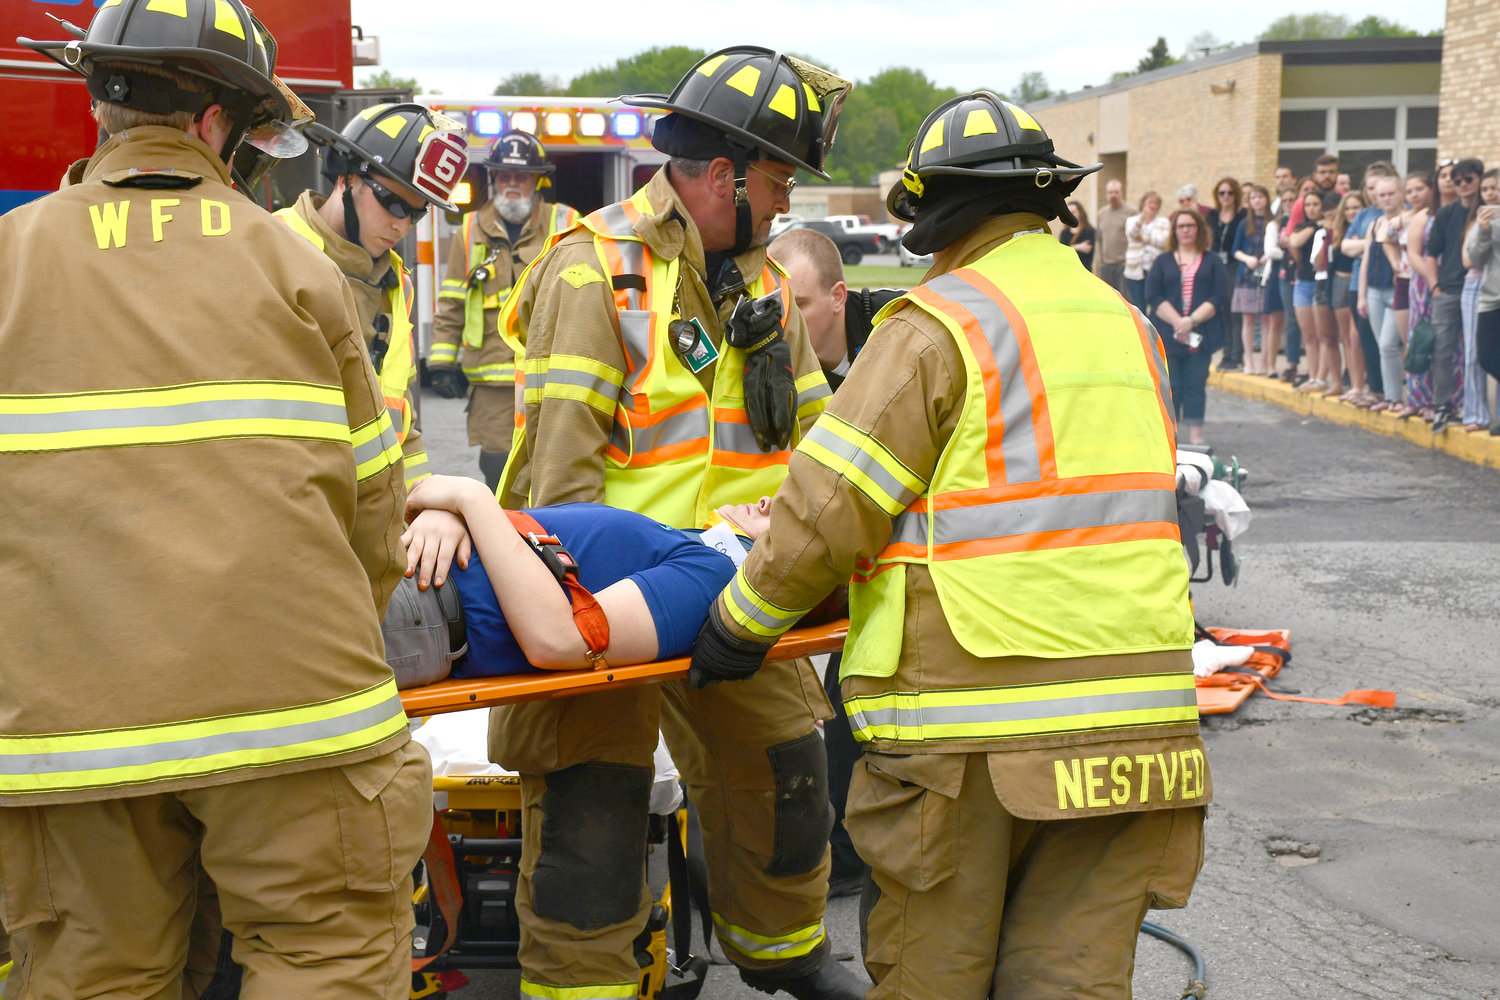 BACKBOARDED — Westmoreland firefighters extract and backboard a mock accident victim as part of a staged vehicular fatality accident scene to demonstrate the possible consequences of distracted driving to Westmoreland Senior High School students on Thursday, May 23 at the Westmoreland school bus garage parking lot. Motor vehicle crashes are the leading cause of death of U.S. teens. Six teens, ages 16-19 die every day from motor vehicle injuries, according to the Center of Disease Control and Prevention.